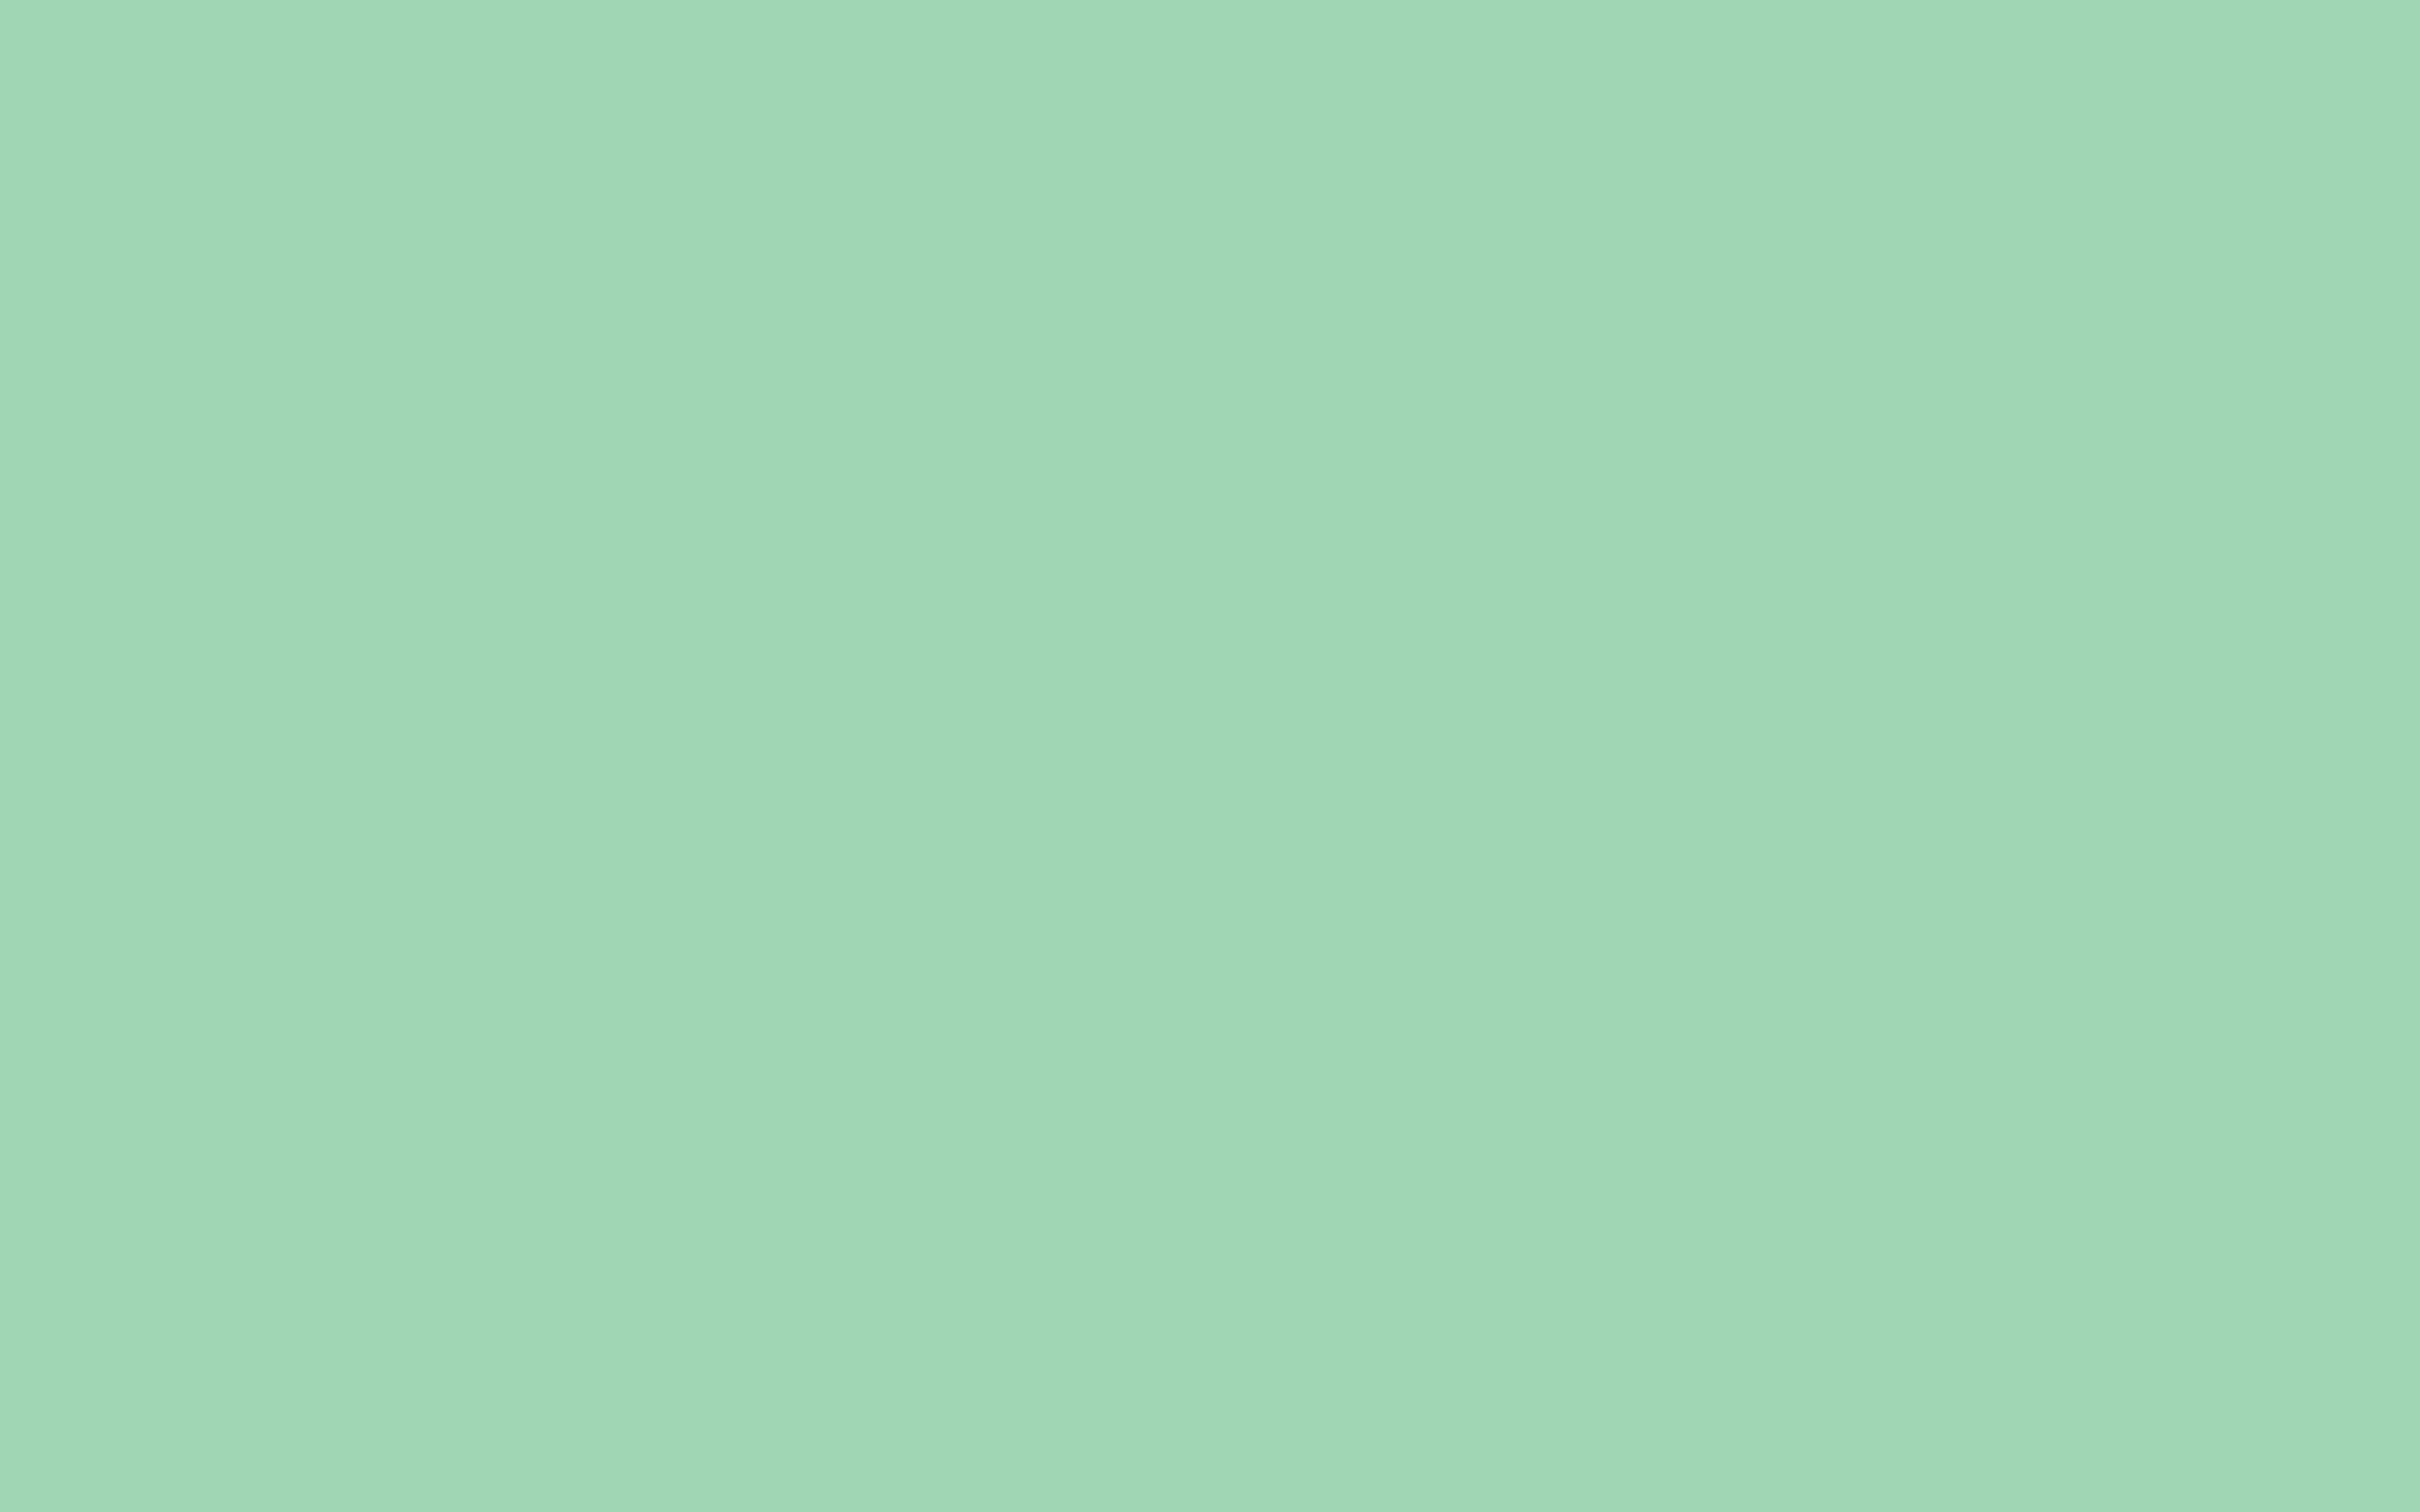 2880x1800 Turquoise Green Solid Color Background